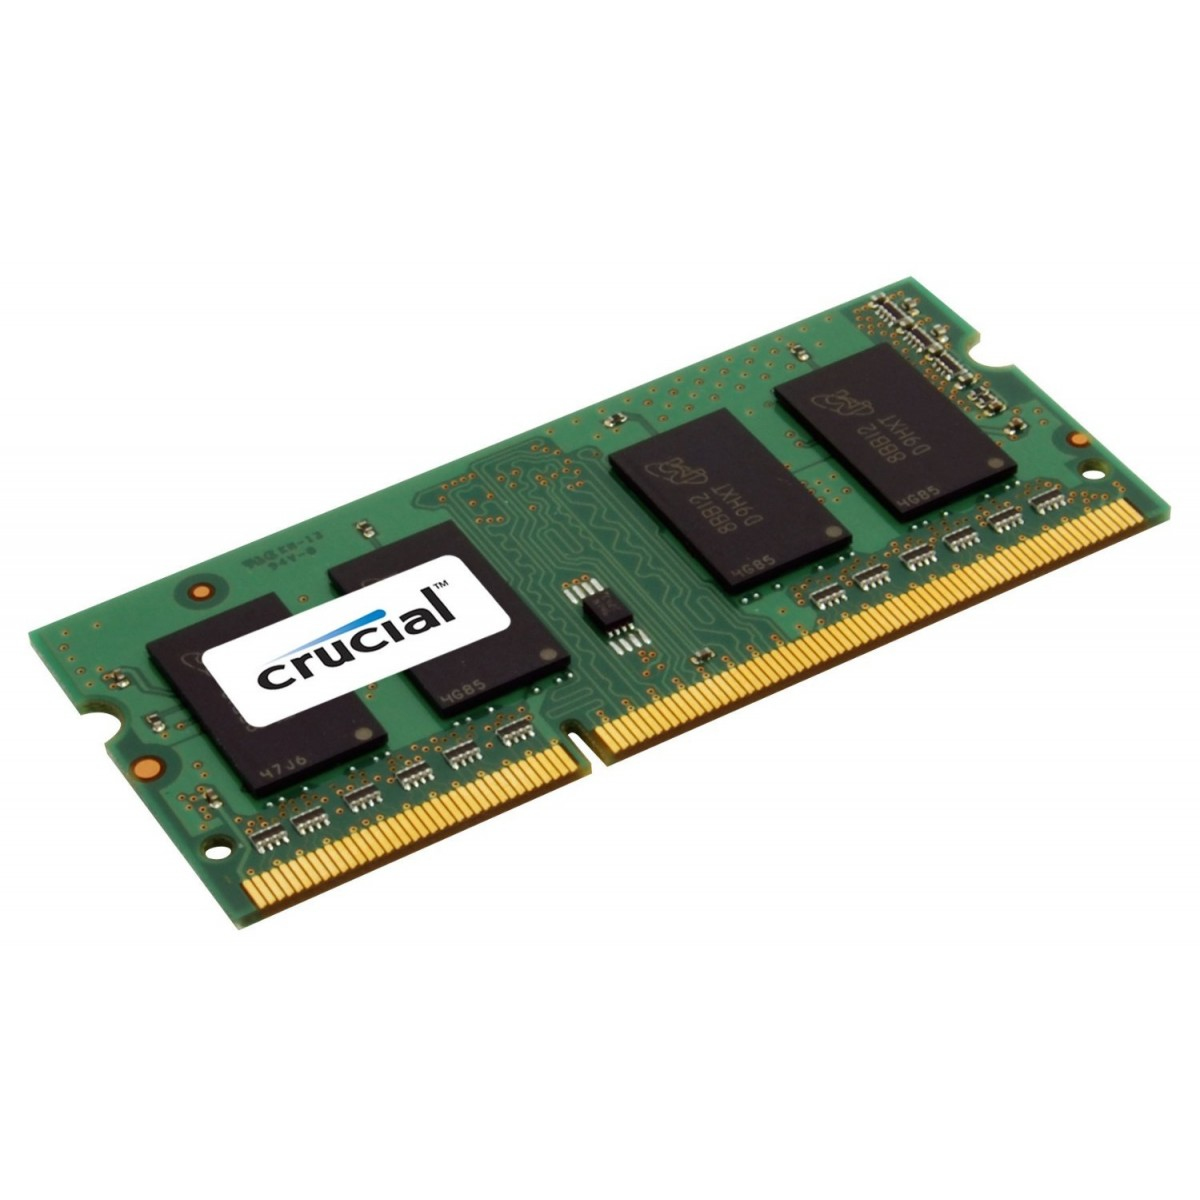 Crucial 8GB DDR3 1600 MT/s  (PC3-12800) CL11 SODIMM 204pin 1.35V/1.5V CT102464BF160B - C2000